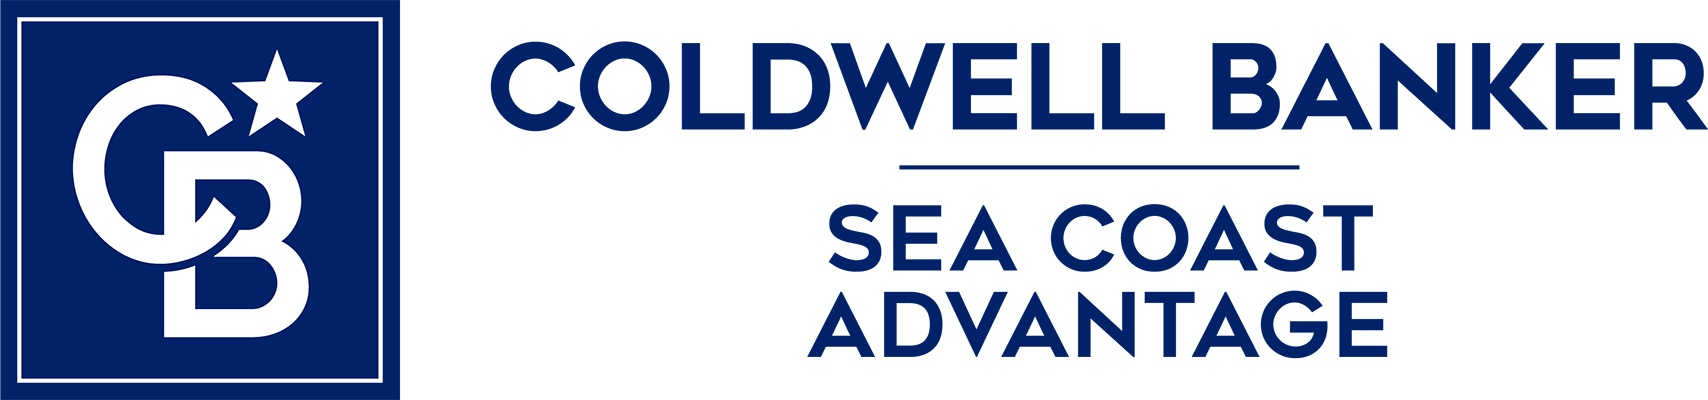 Sarah Walters - Coldwell Banker Sea Coast Advantage Realty Logo